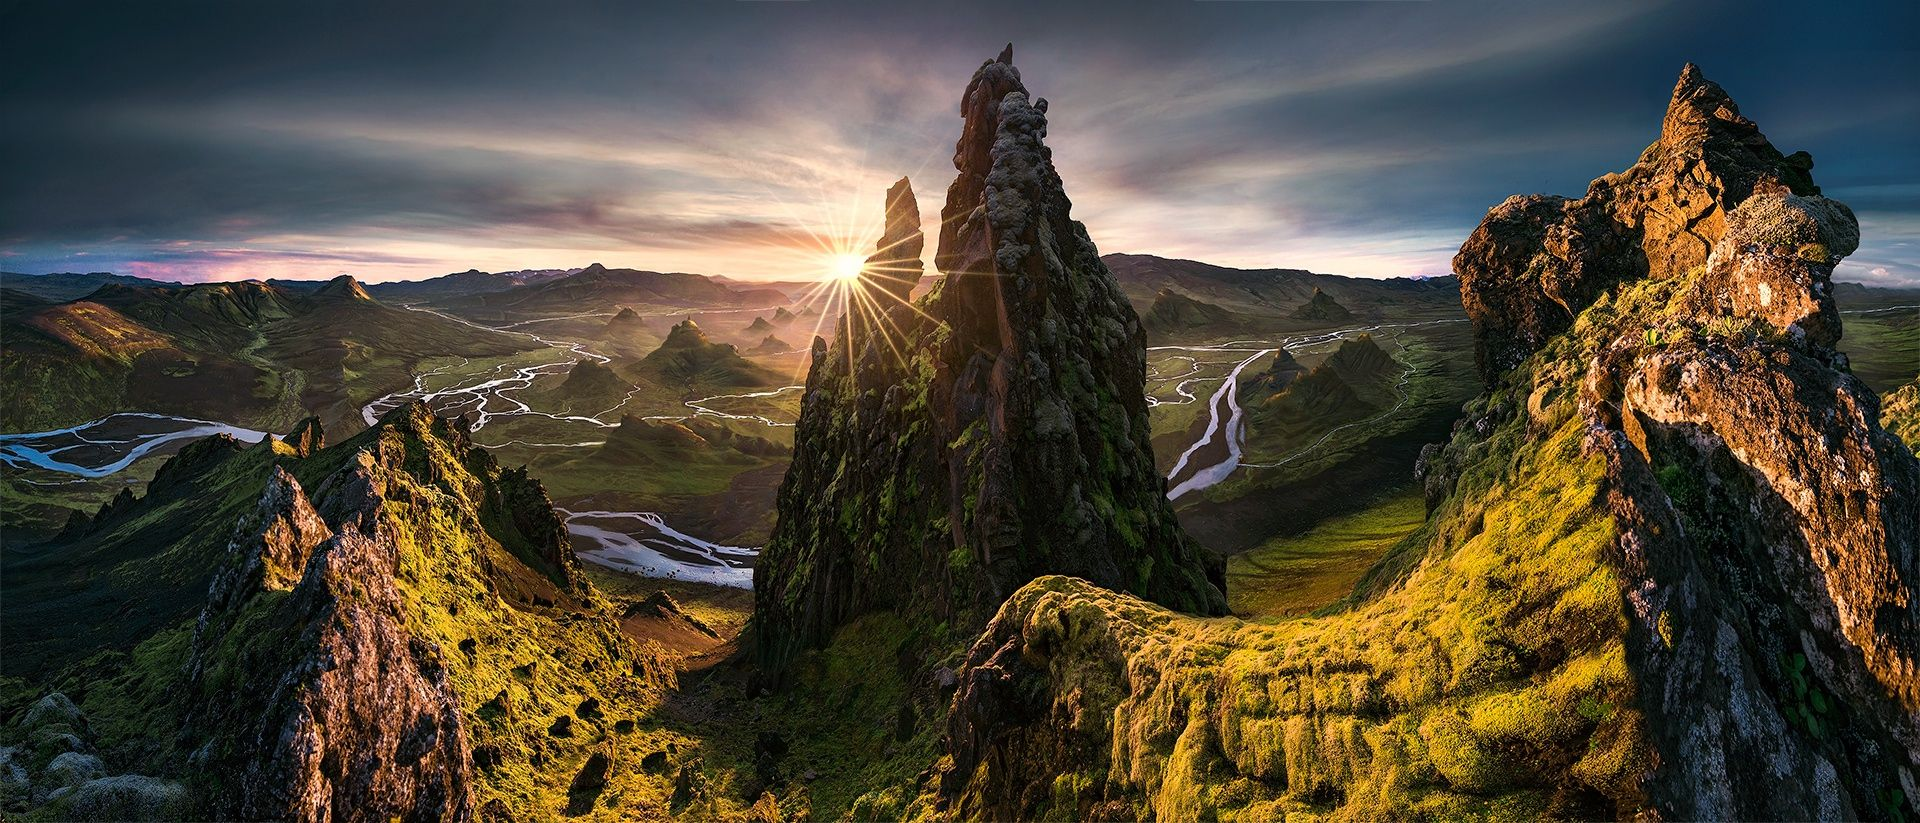 """The Dictator - For my latest work check my <a href=""""https://www.facebook.com/pages/Max-Rive-Photography/182378168614600?fref=ts"""">'Facebook Page</a>  I took this pano during sunset in the Icelandic Highlands. I couldn't use a tripod from this position and also had to do some focus stacking on the right part. The distortion was pretty problematic when I first merged all the shots, which became obvious because of all the water but I could make some local adjustments.   In case you are…"""